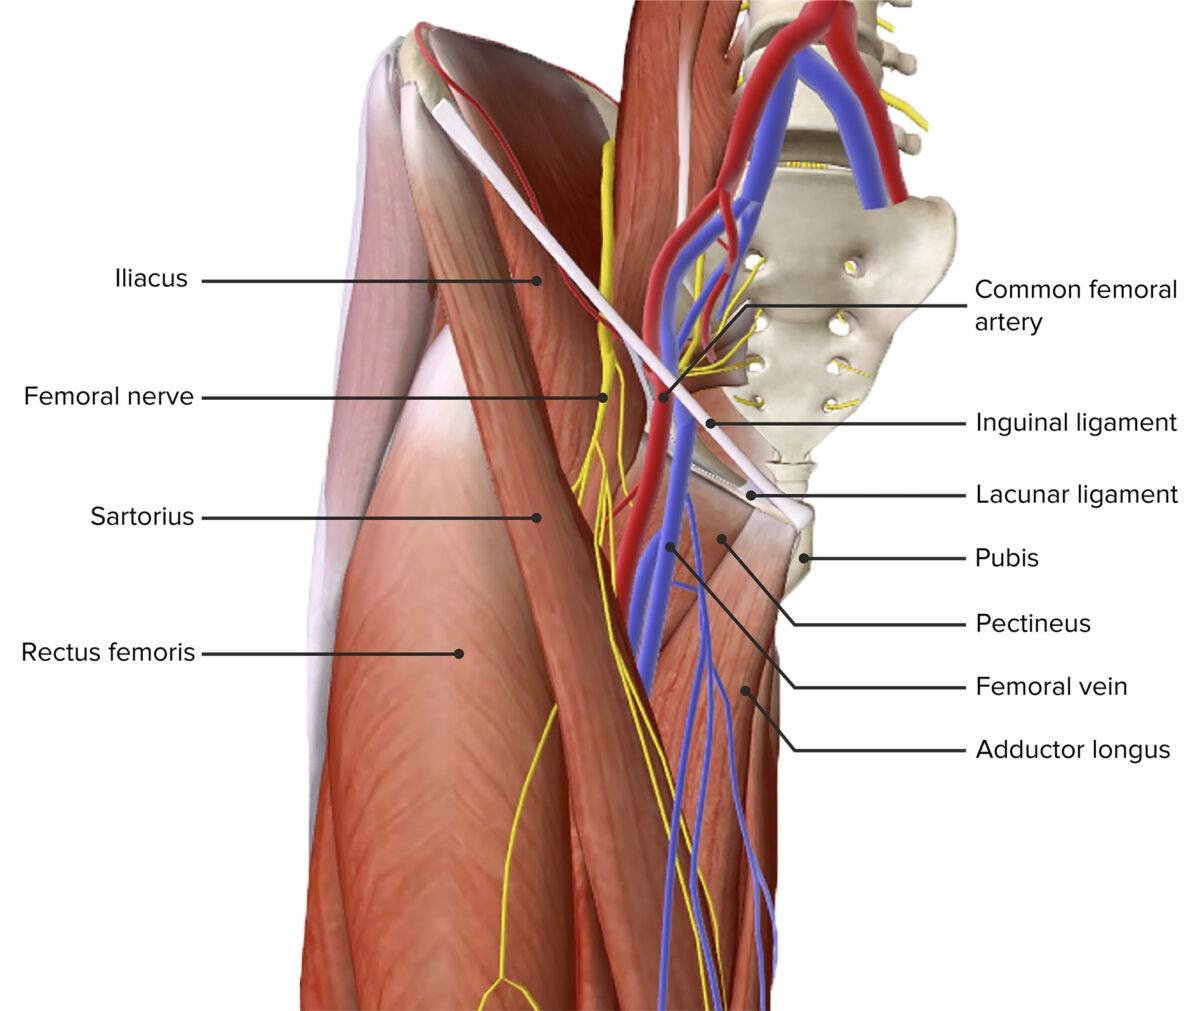 Anterior view of the thigh